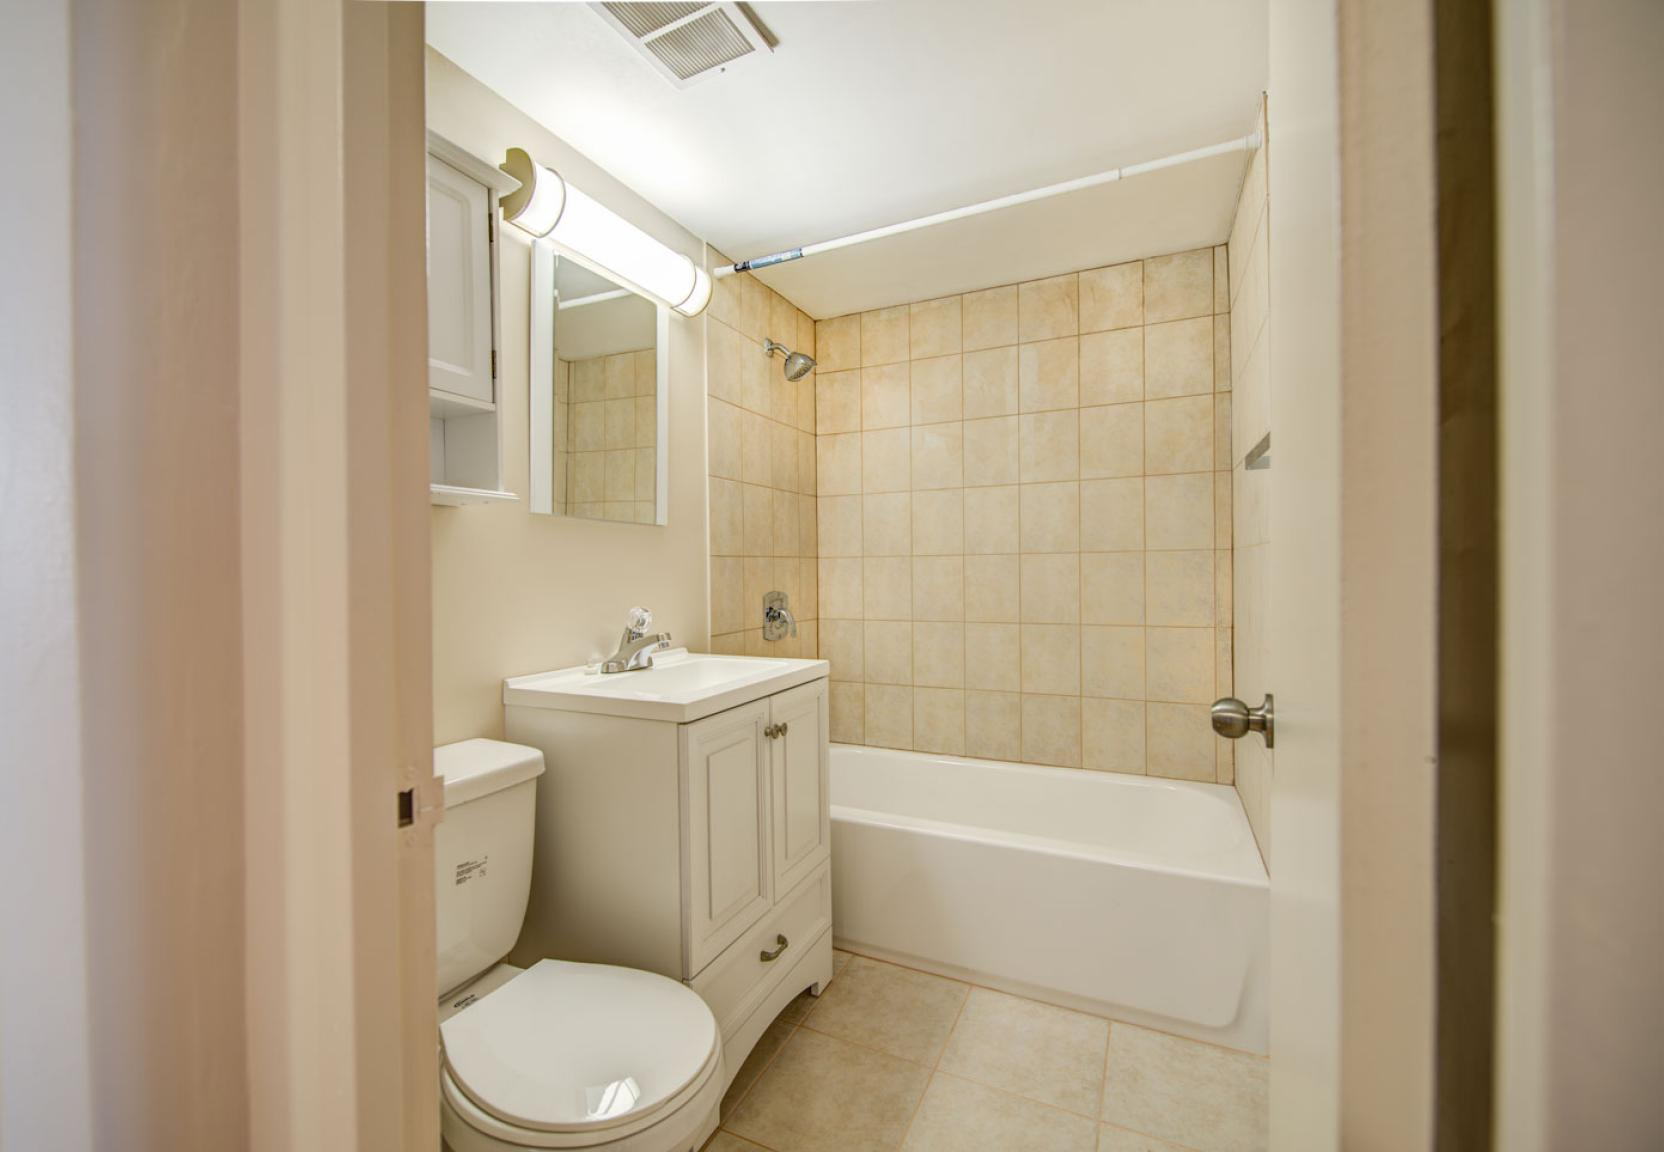 Studio / Bachelor Apartments for rent in Toronto at Dunfield Tower - Photo 20 - RentersPages – L138878